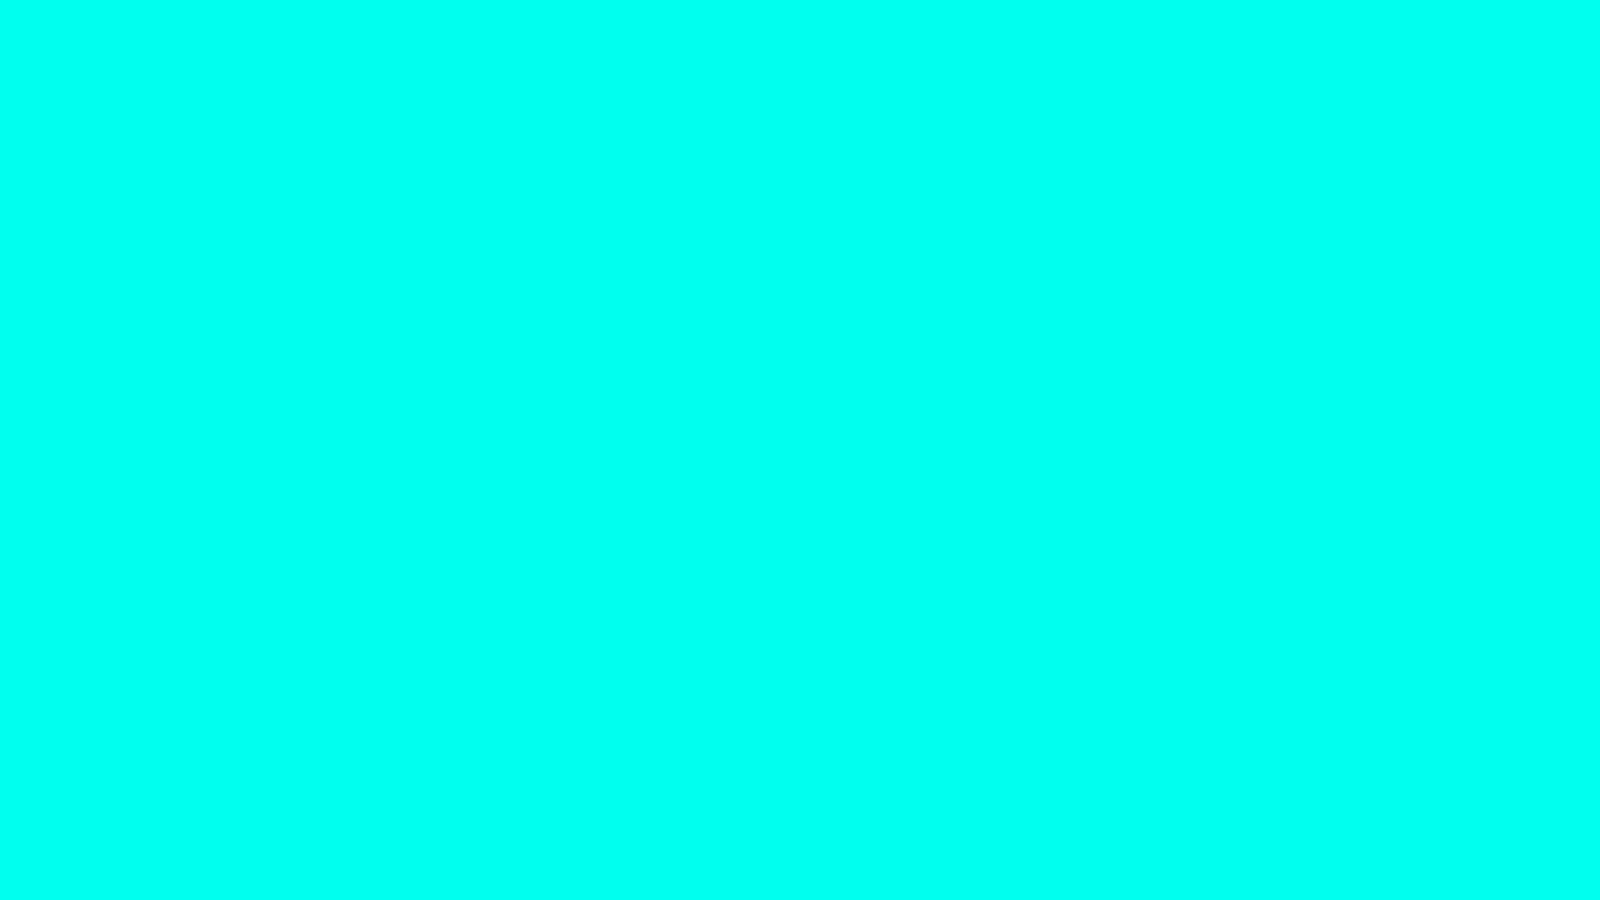 1600x900 Turquoise Blue Solid Color Background